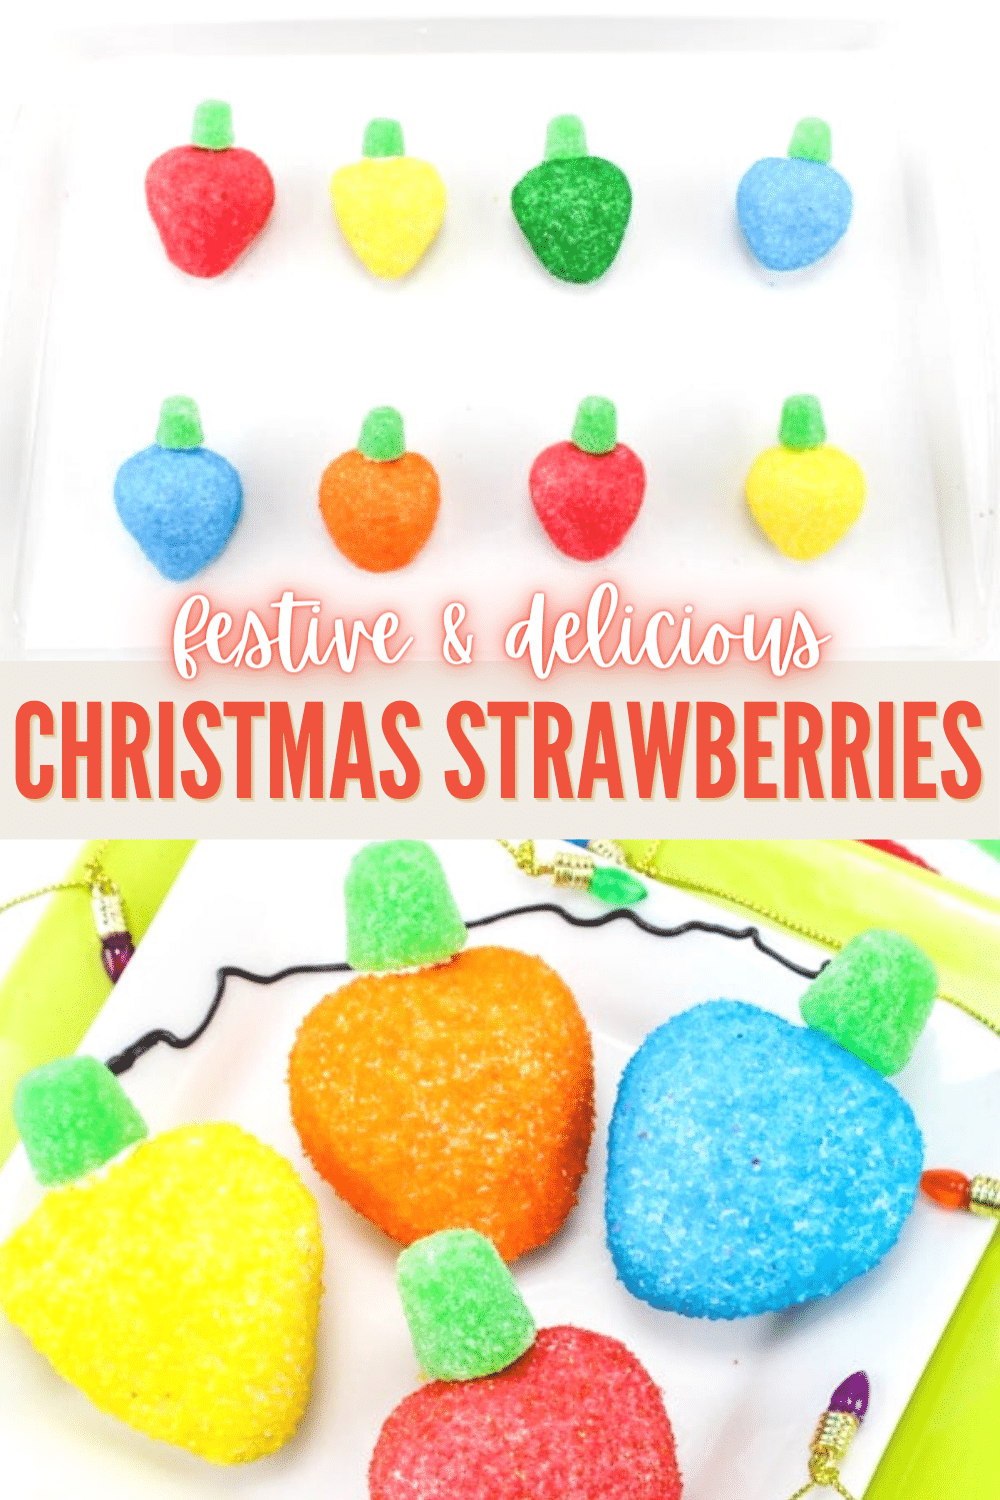 These Christmas Strawberries are chocolate covered strawberries disguised as adorable Christmas lights! Yummy and decorative! #ChristmasTreats #funfood #strawberries via @wondermomwannab